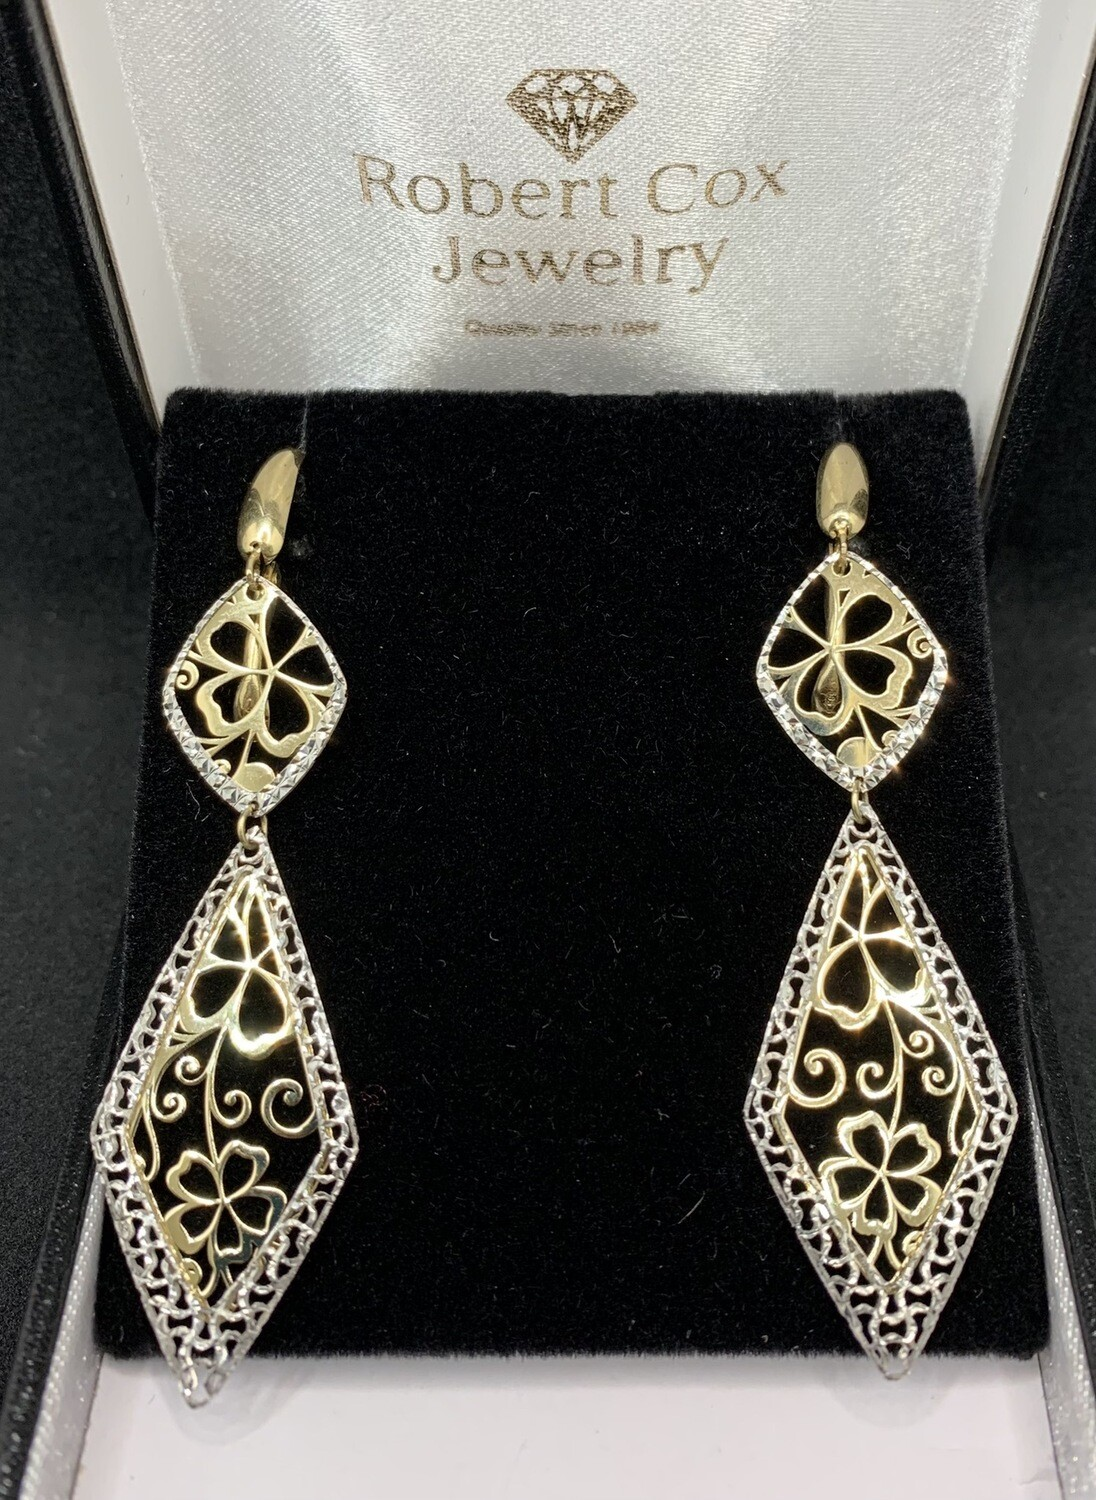 Laser Cut 14 Kt Two Tone Gold Filigree Dangling Earrings With Lever Back